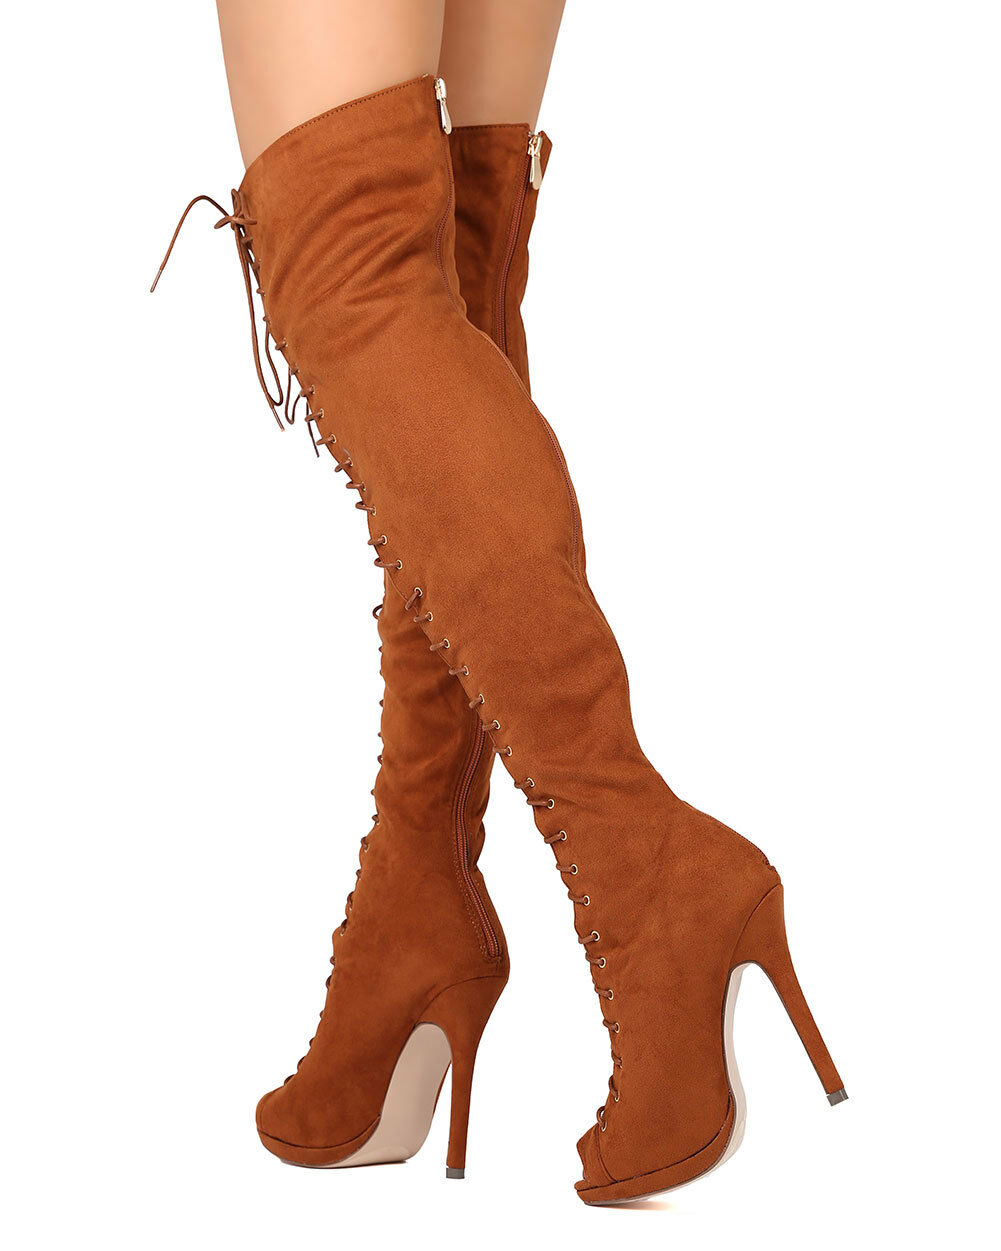 New Women Liliana Opus-1A Faux Suede Thigh High Peep Toe Lace Up Stiletto Boot